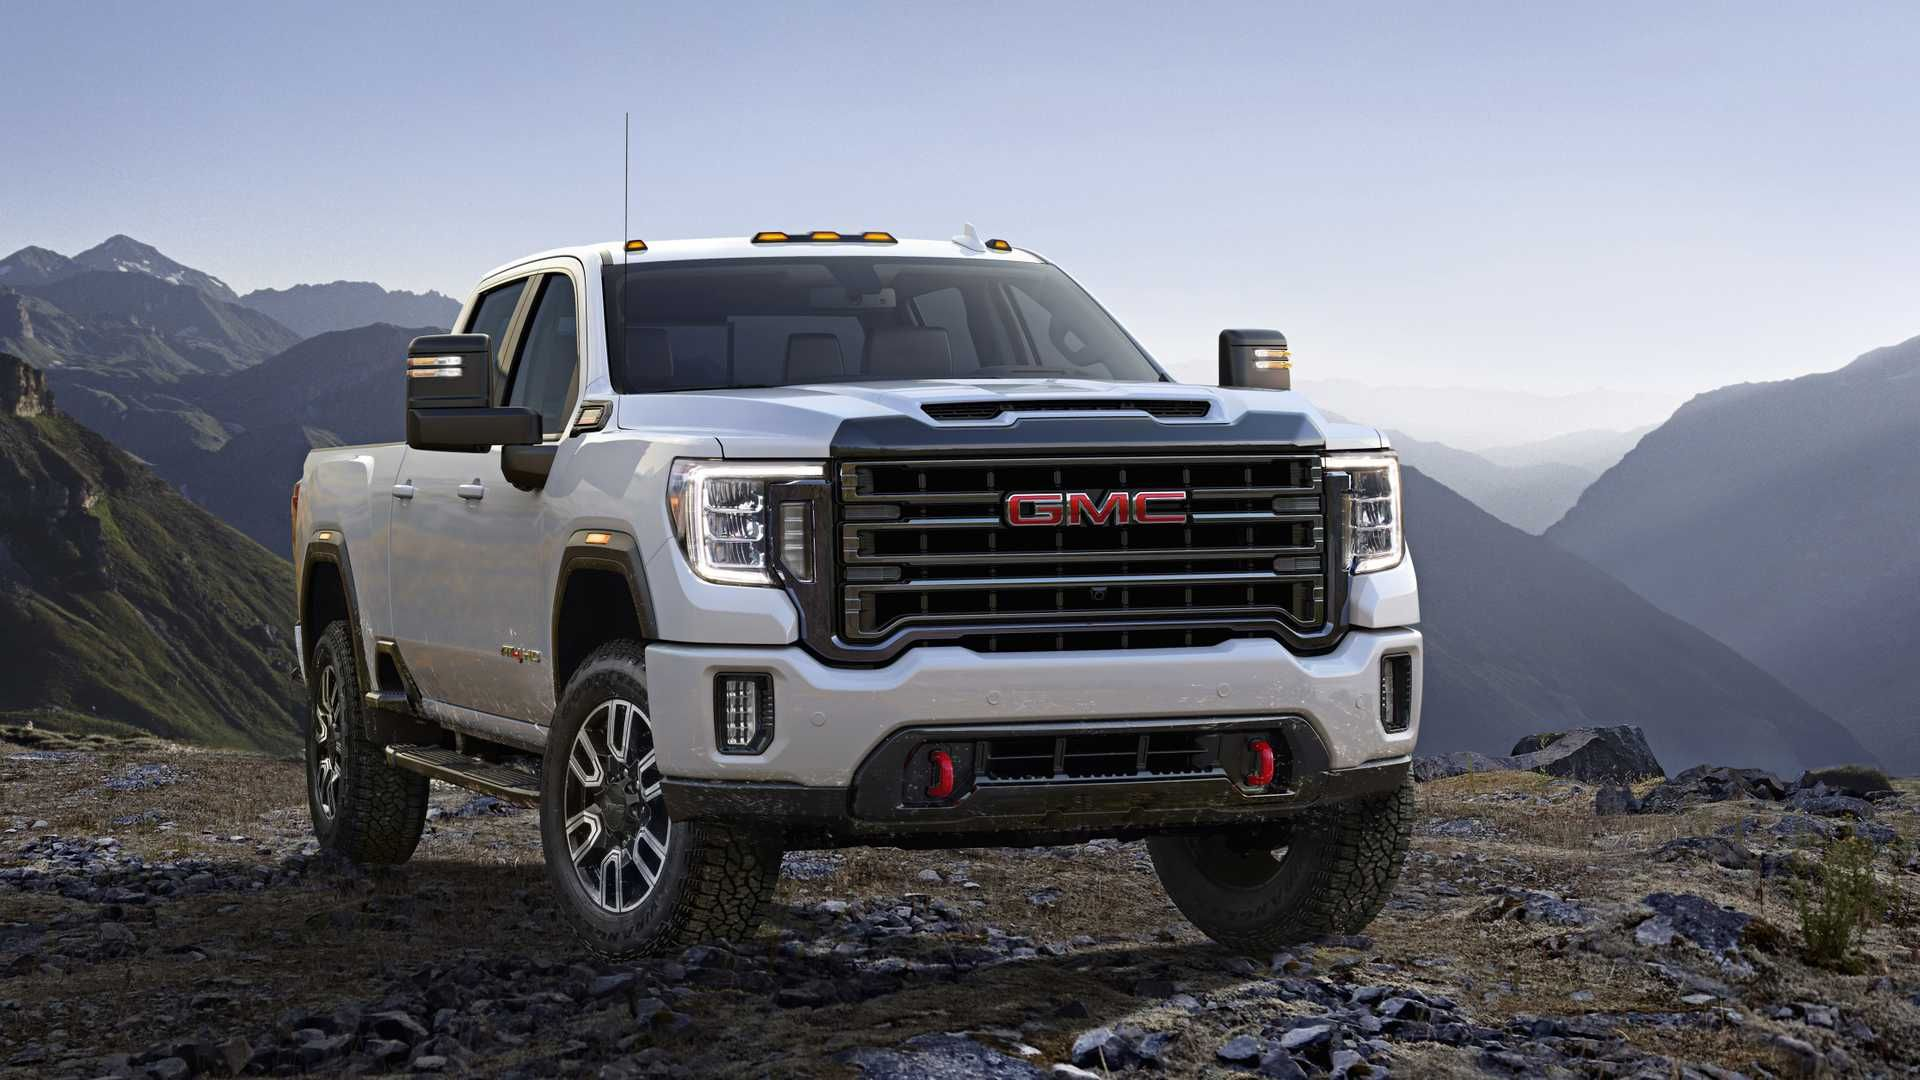 2020 Gmc Sierra Hd 2500 At4 Crew Cab Gmc 2500 Gmc Gmc Trucks